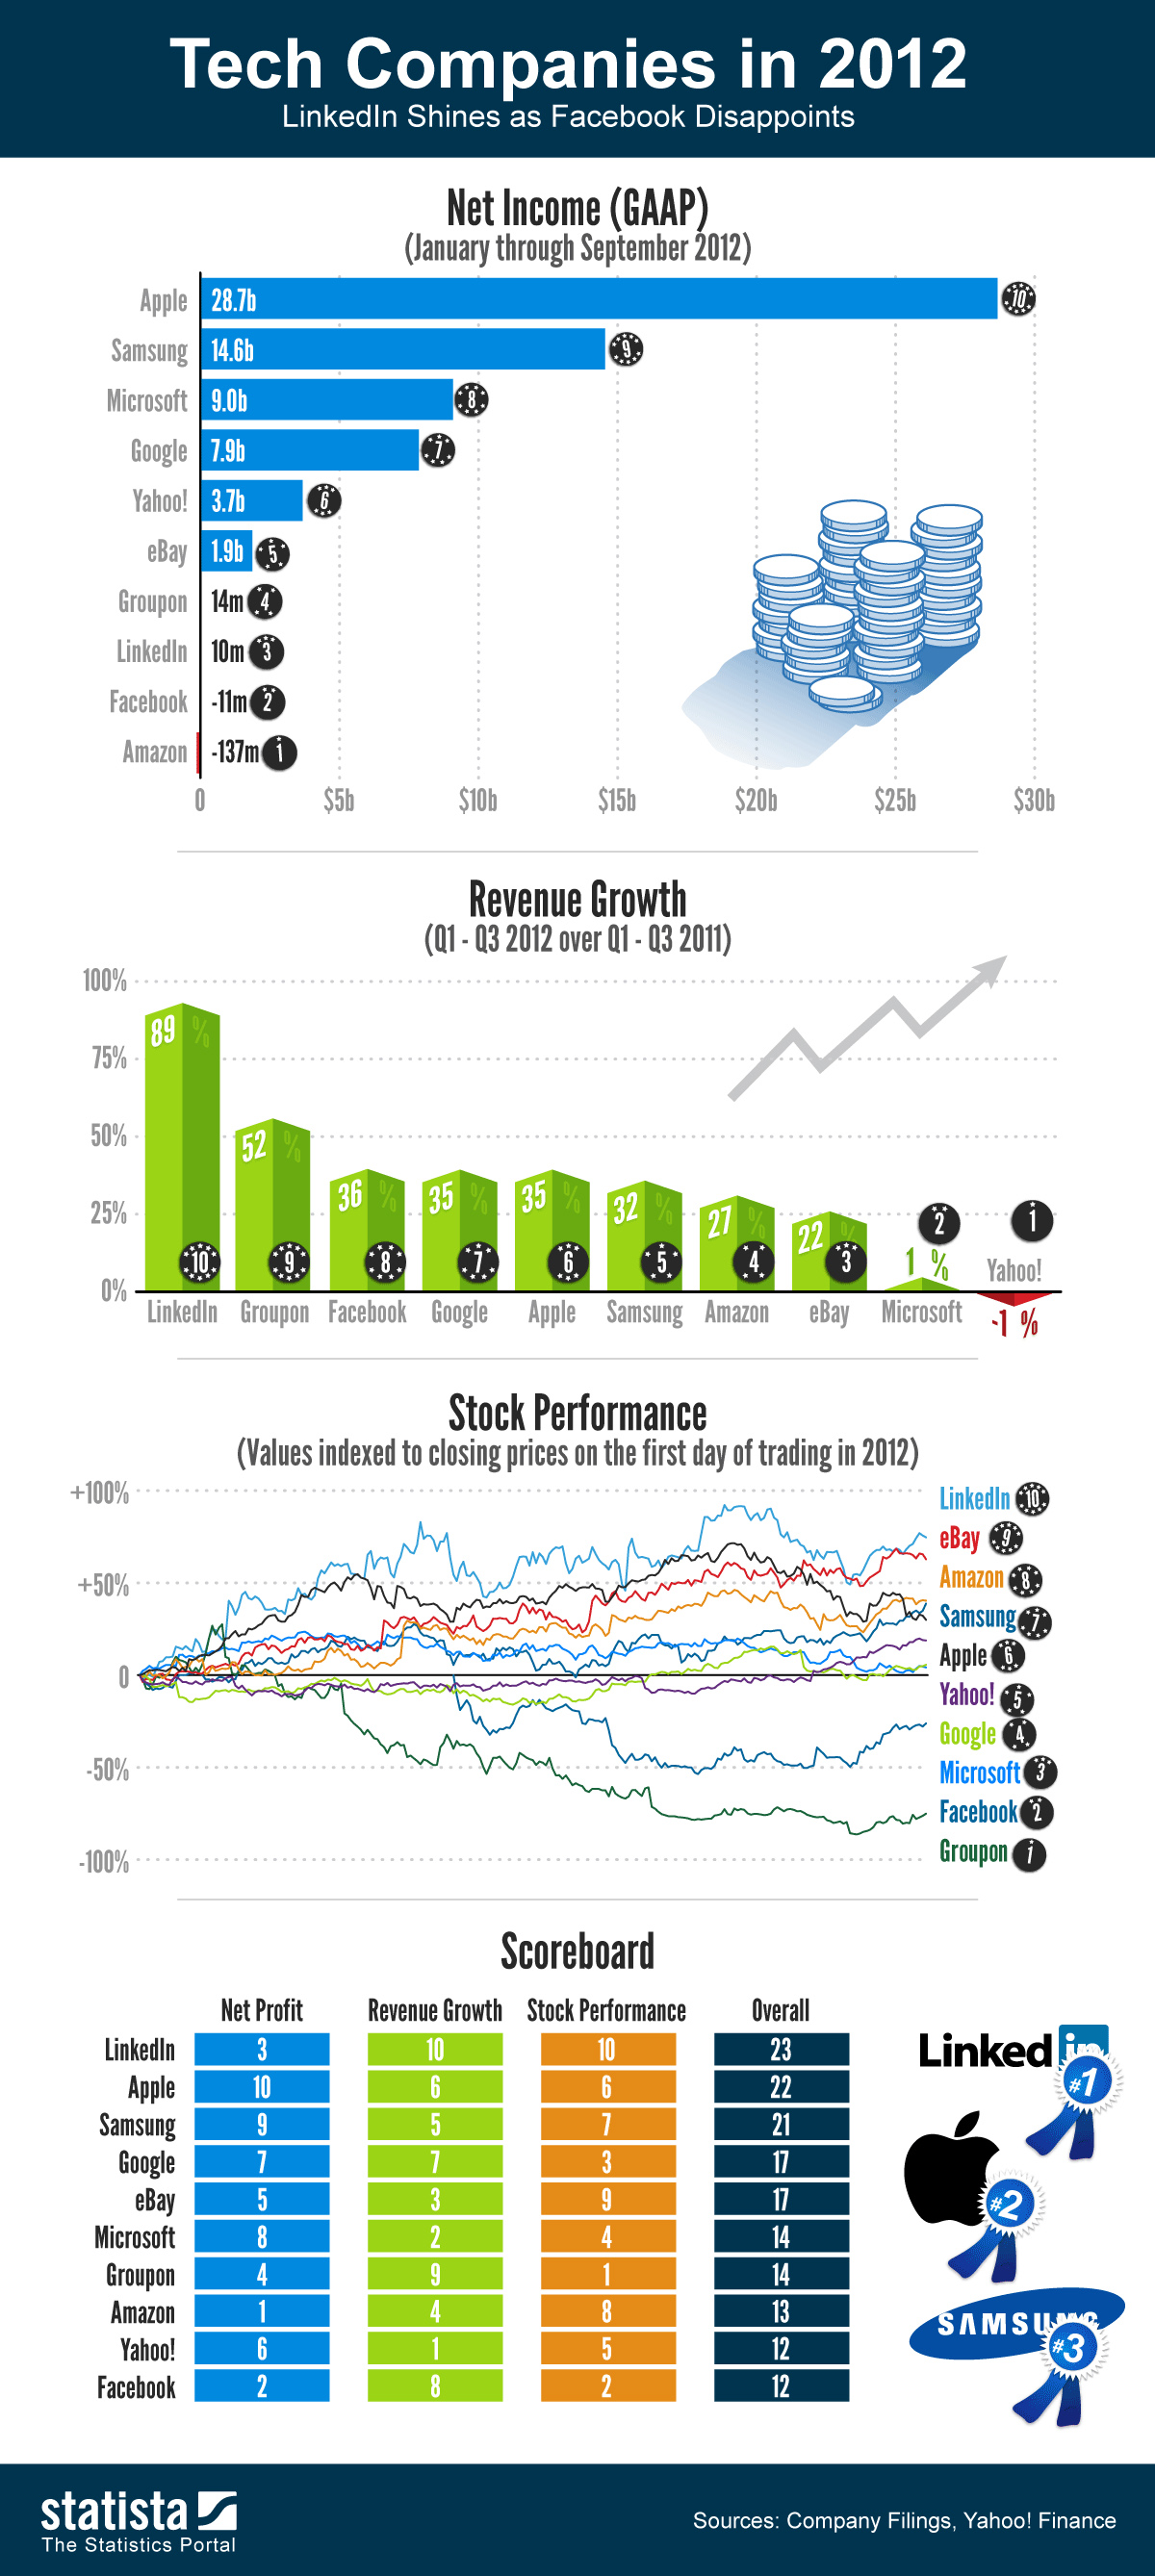 1statista-tech-companies-2012-infographic